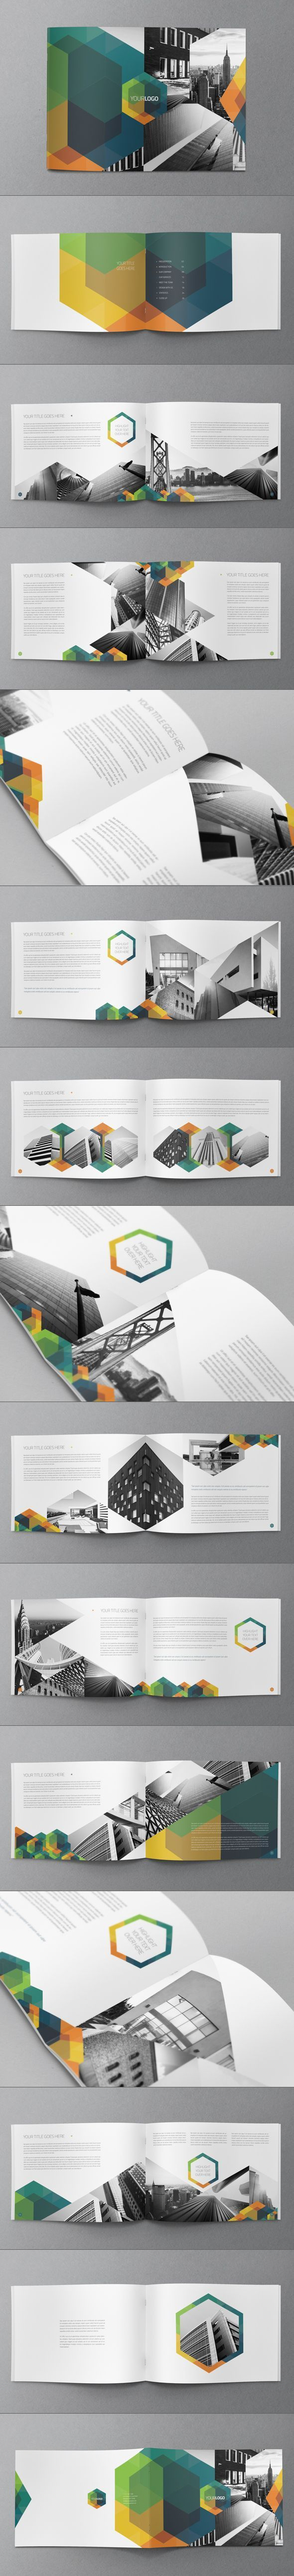 Graphic Design Inspiration - Business Portfolio -  Company Profile - Brochure - Press Release - Modern - Geometric - Colorful